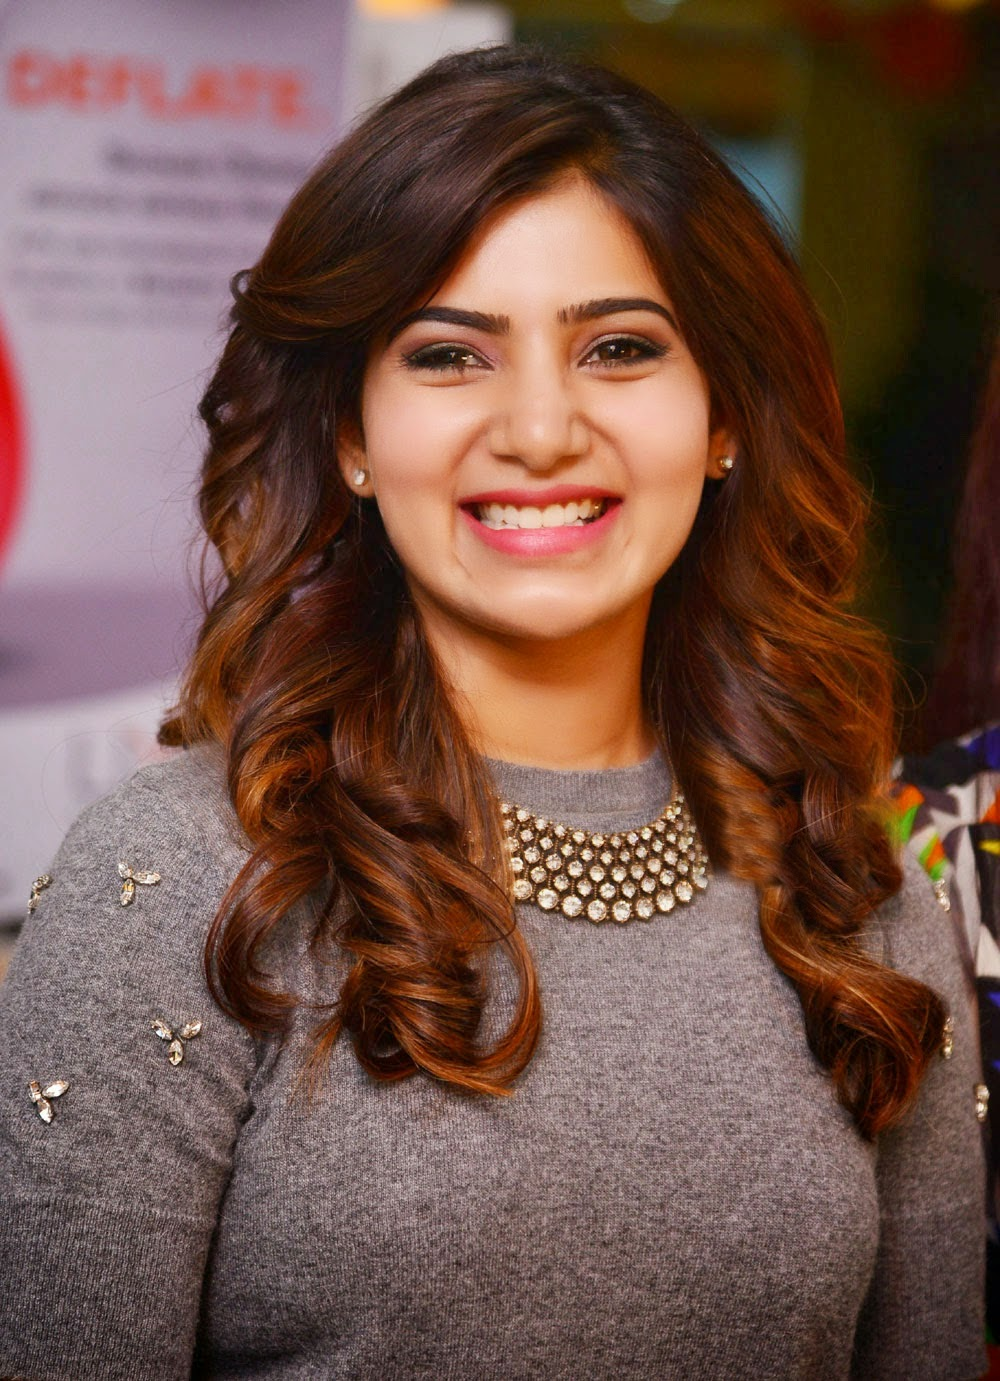 Samantha At Livlife Hospital Join Hands To Work Event Beautiful Pics Ruth Prabhu